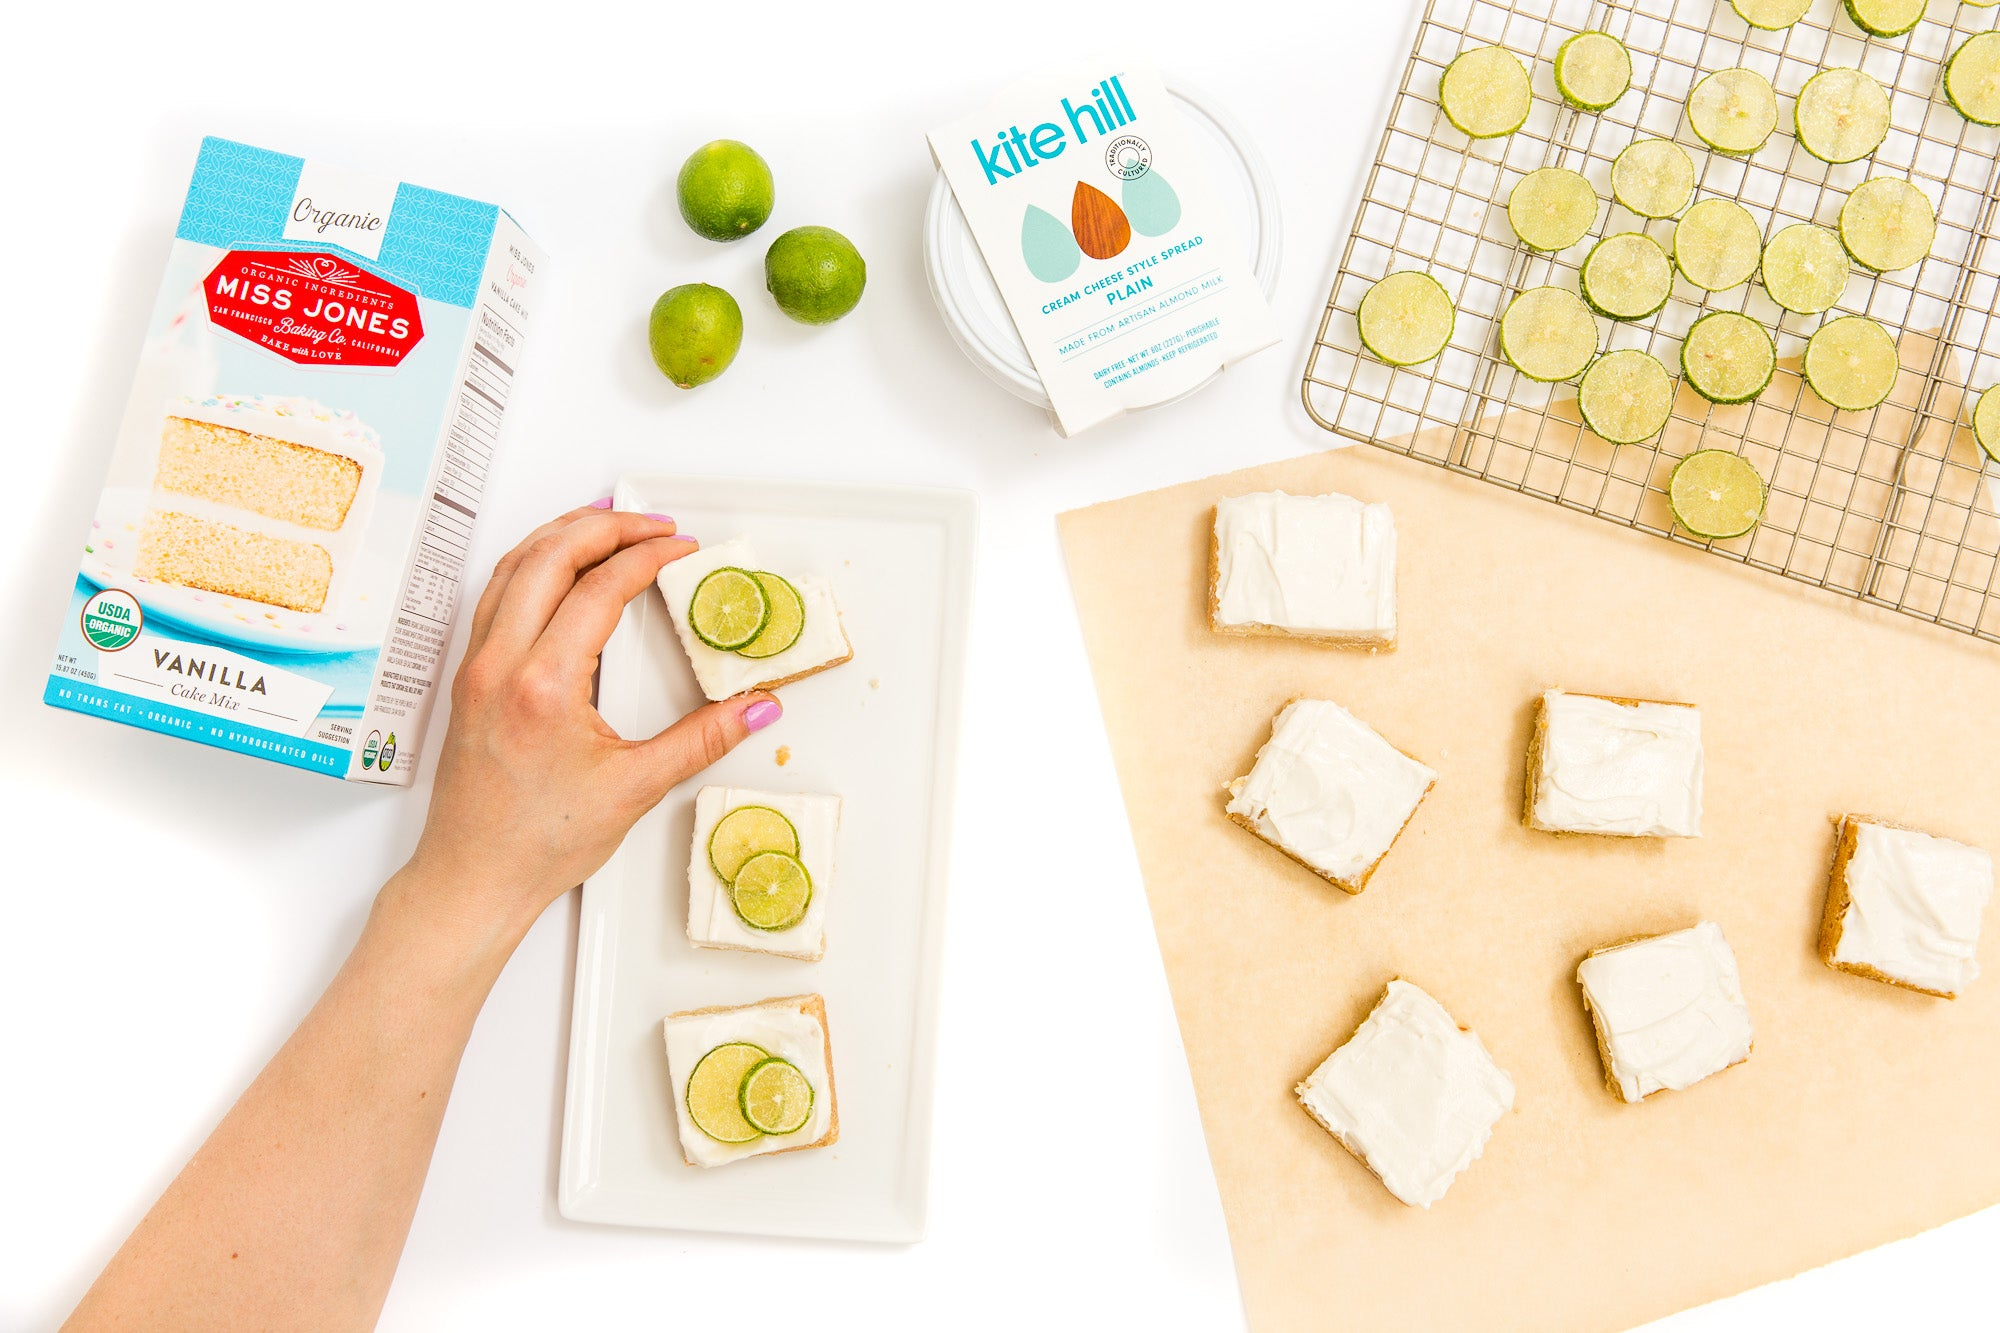 Image of a hand taking a Miss Jones Baking Co Key Lime Margarita Bar off of a plate next to a box of Miss Jones Vanilla Cake Mix, three limes, a tub of Kite Hill Cream Cheese spread, lime slices on a baking rack and six unfinished Miss Jones Baking Co Key Lime Margarita Bars